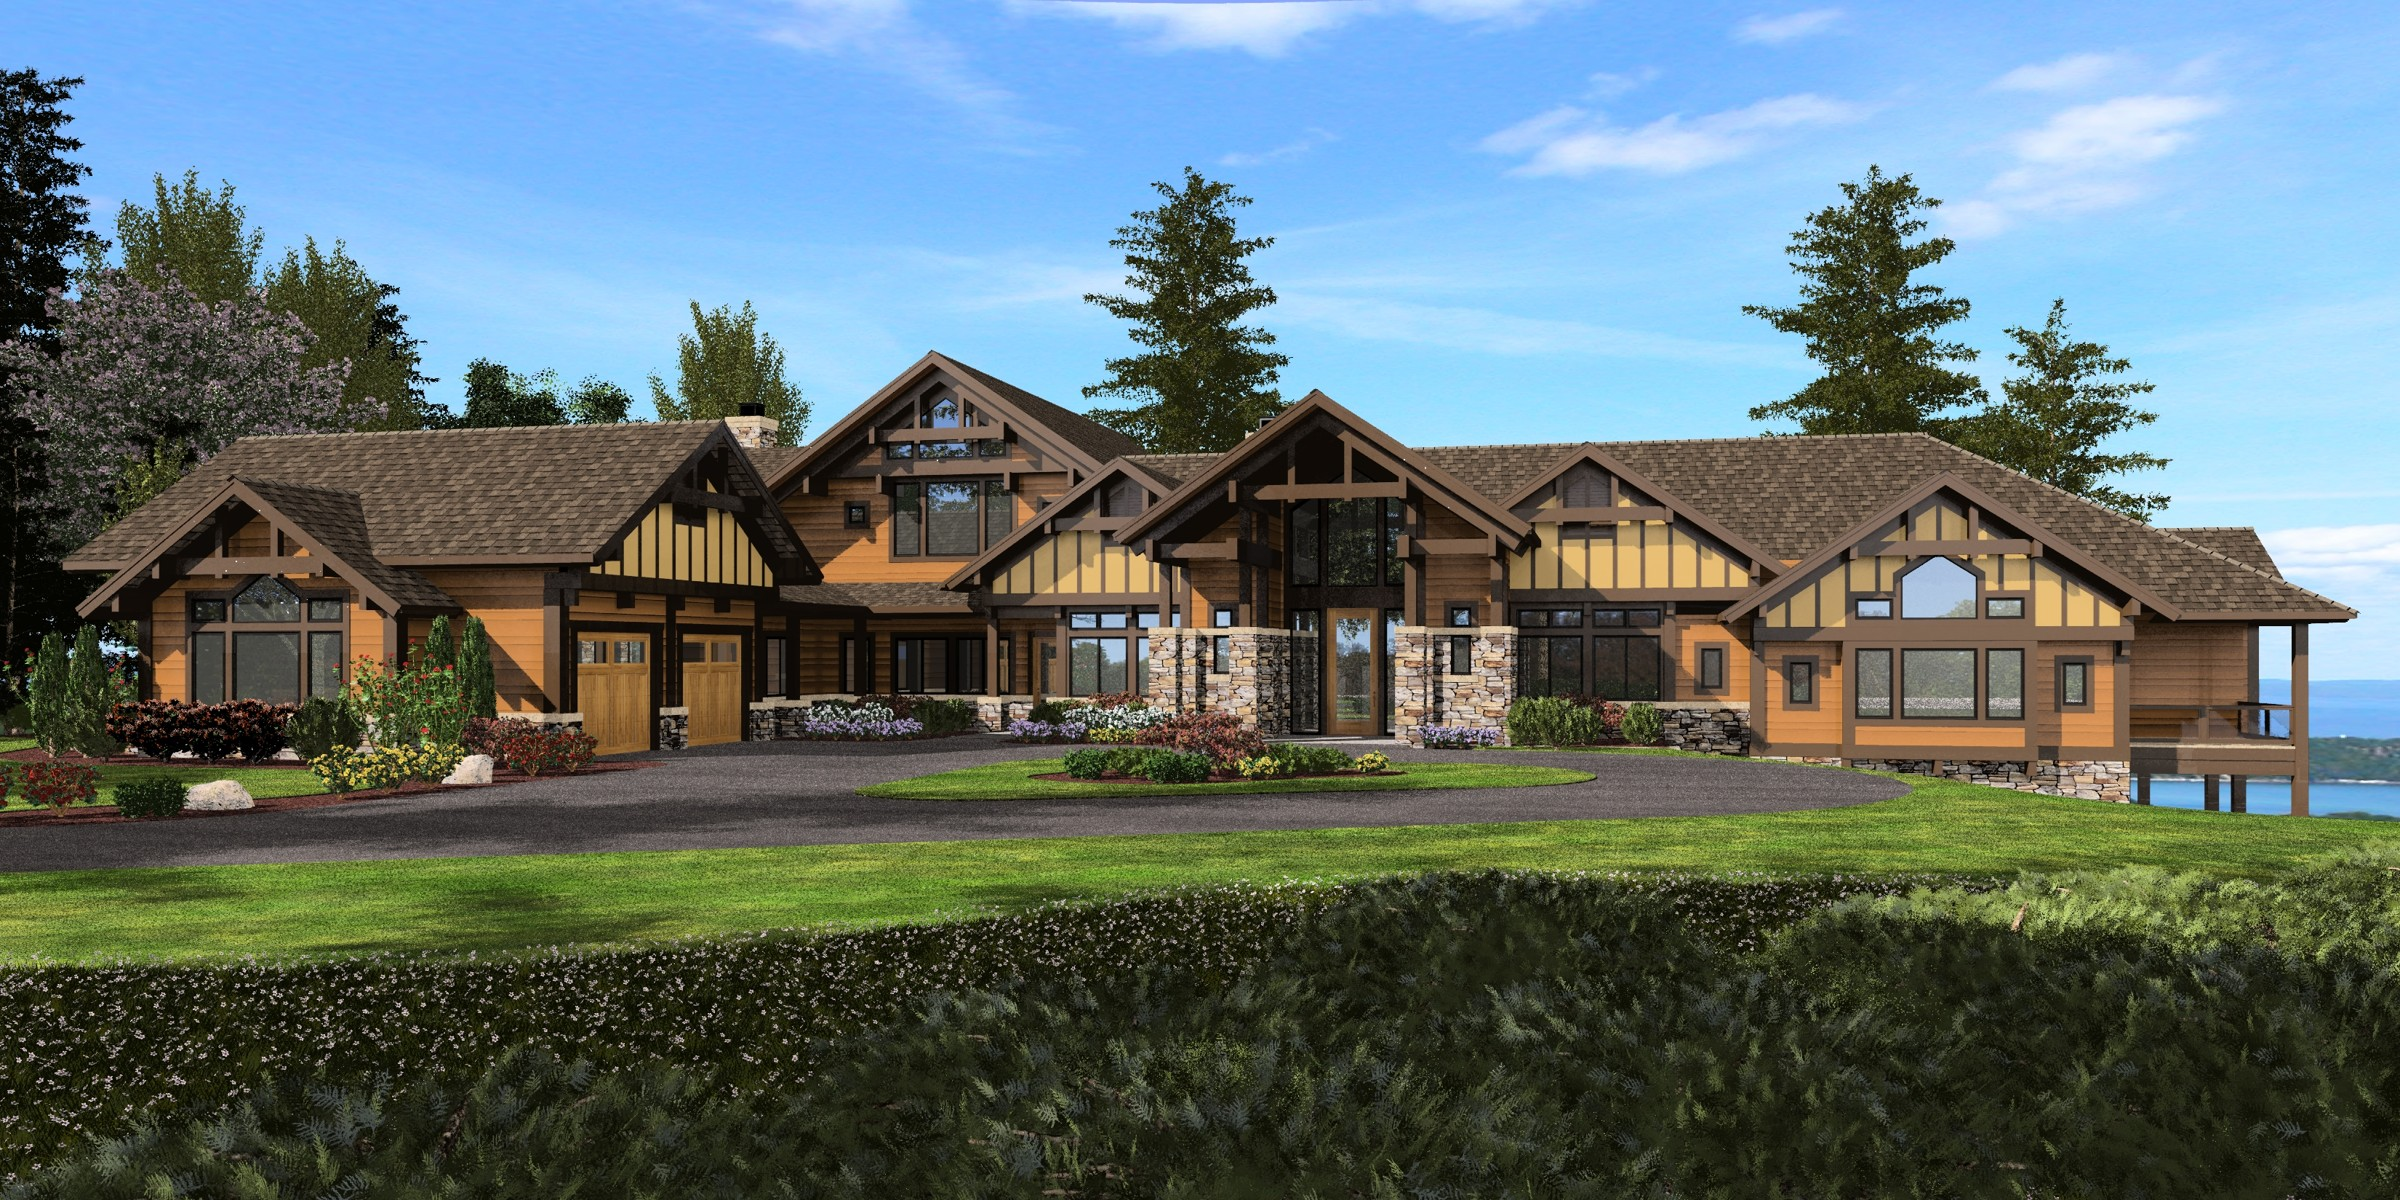 Mountain Craftsman House Plan With Sweeping Views